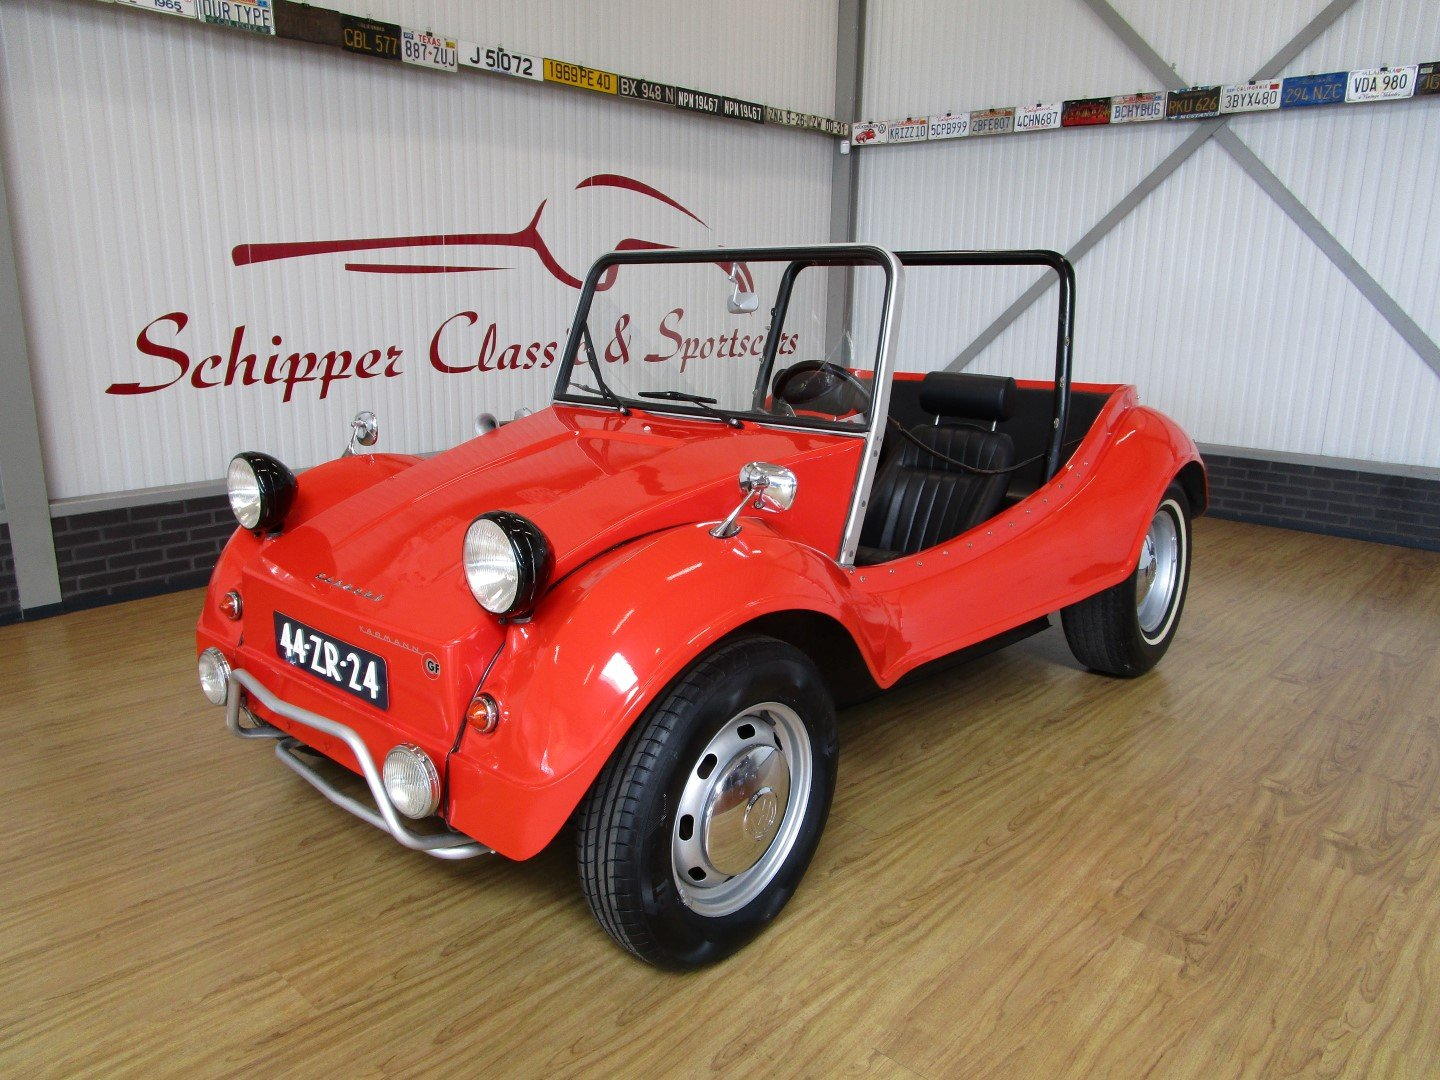 1972 Volkswagen Karmann GF Buggy former Royal House For Sale (picture 1 of 6)